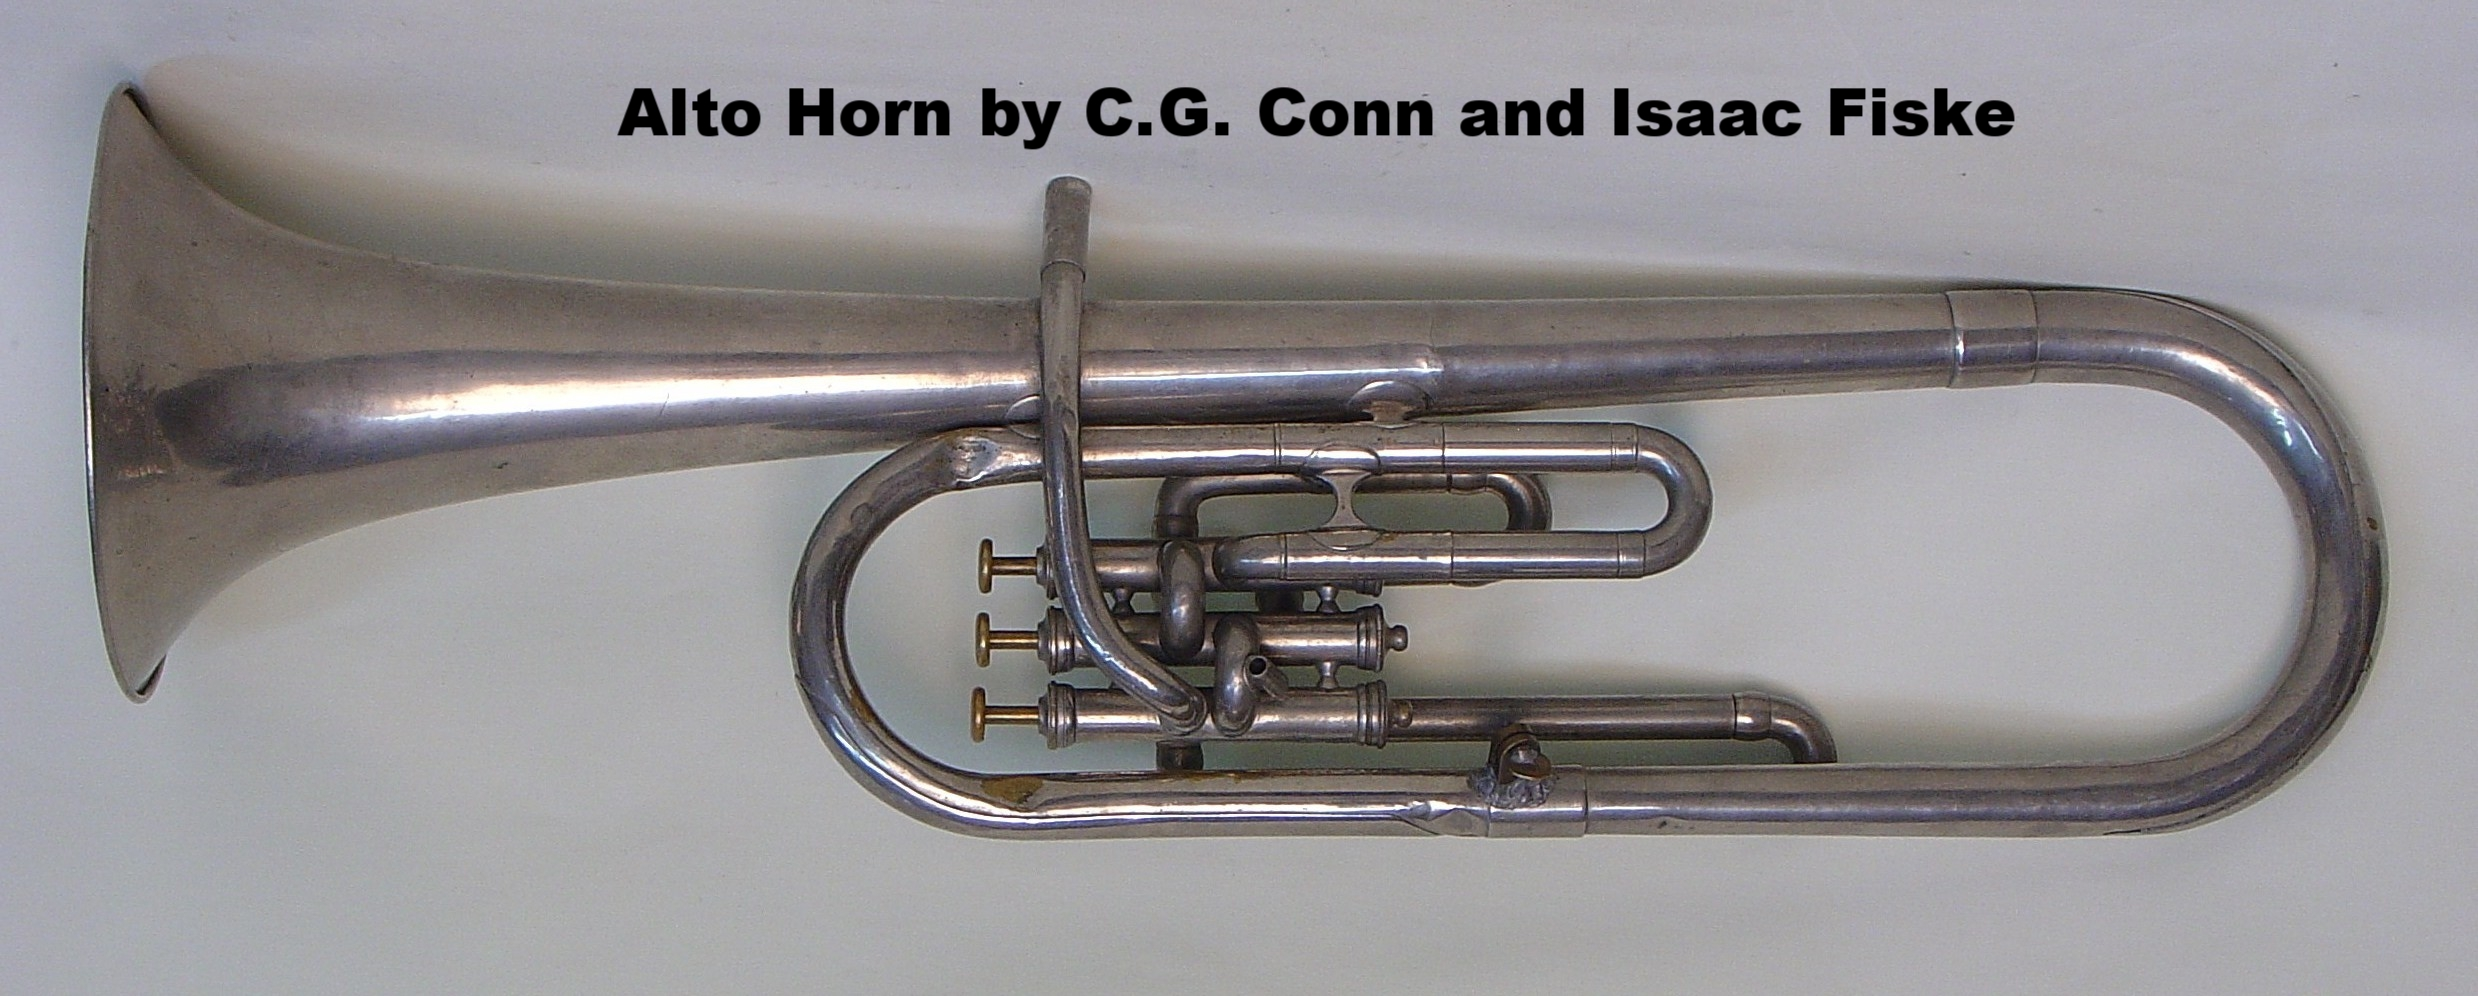 Alto Horn by C.G. Conn and Isaac Fiske